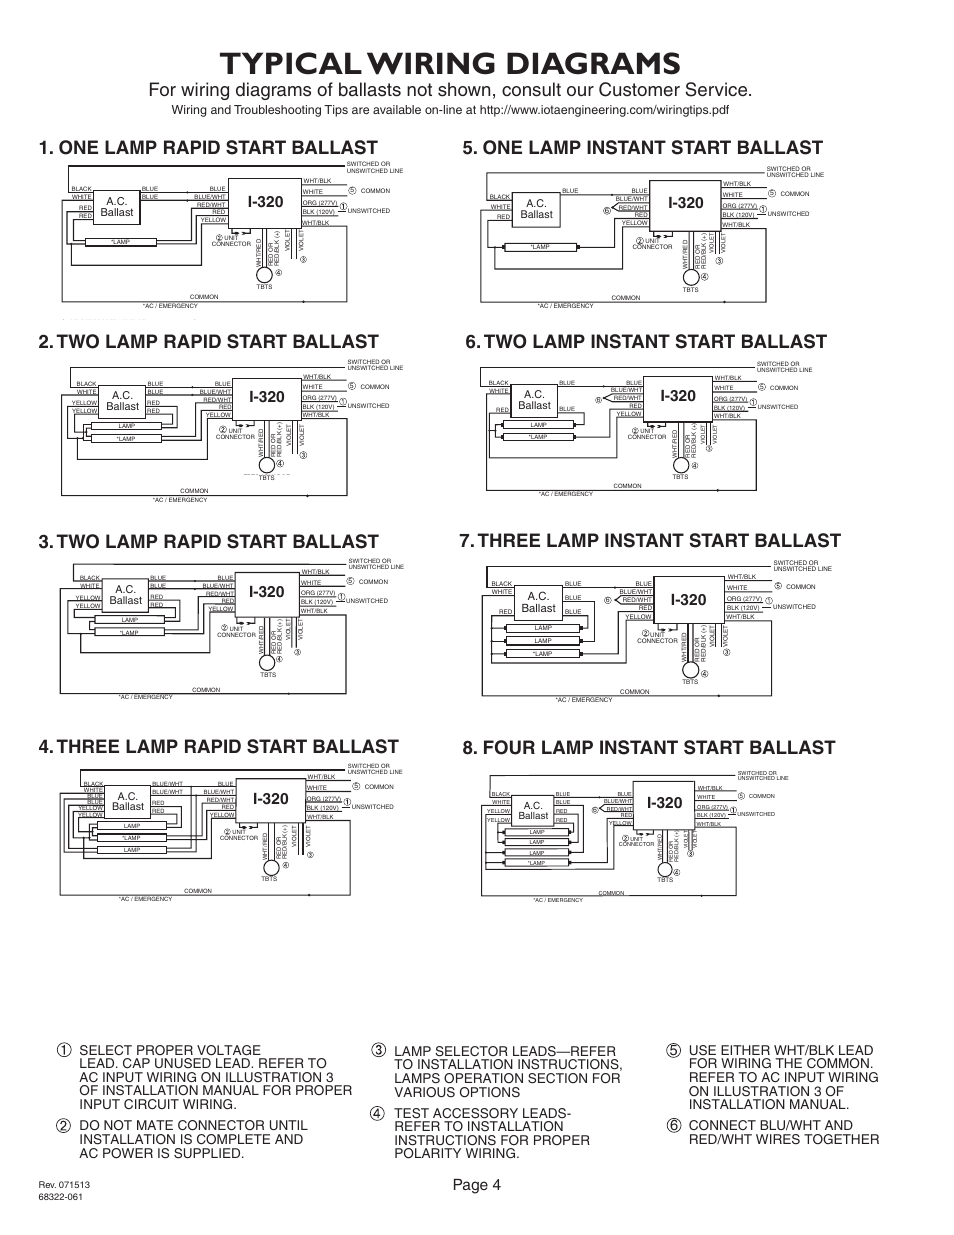 iota i 320 page4 eb60 emergency ballasts wiring diagram diagram wiring diagrams  at honlapkeszites.co